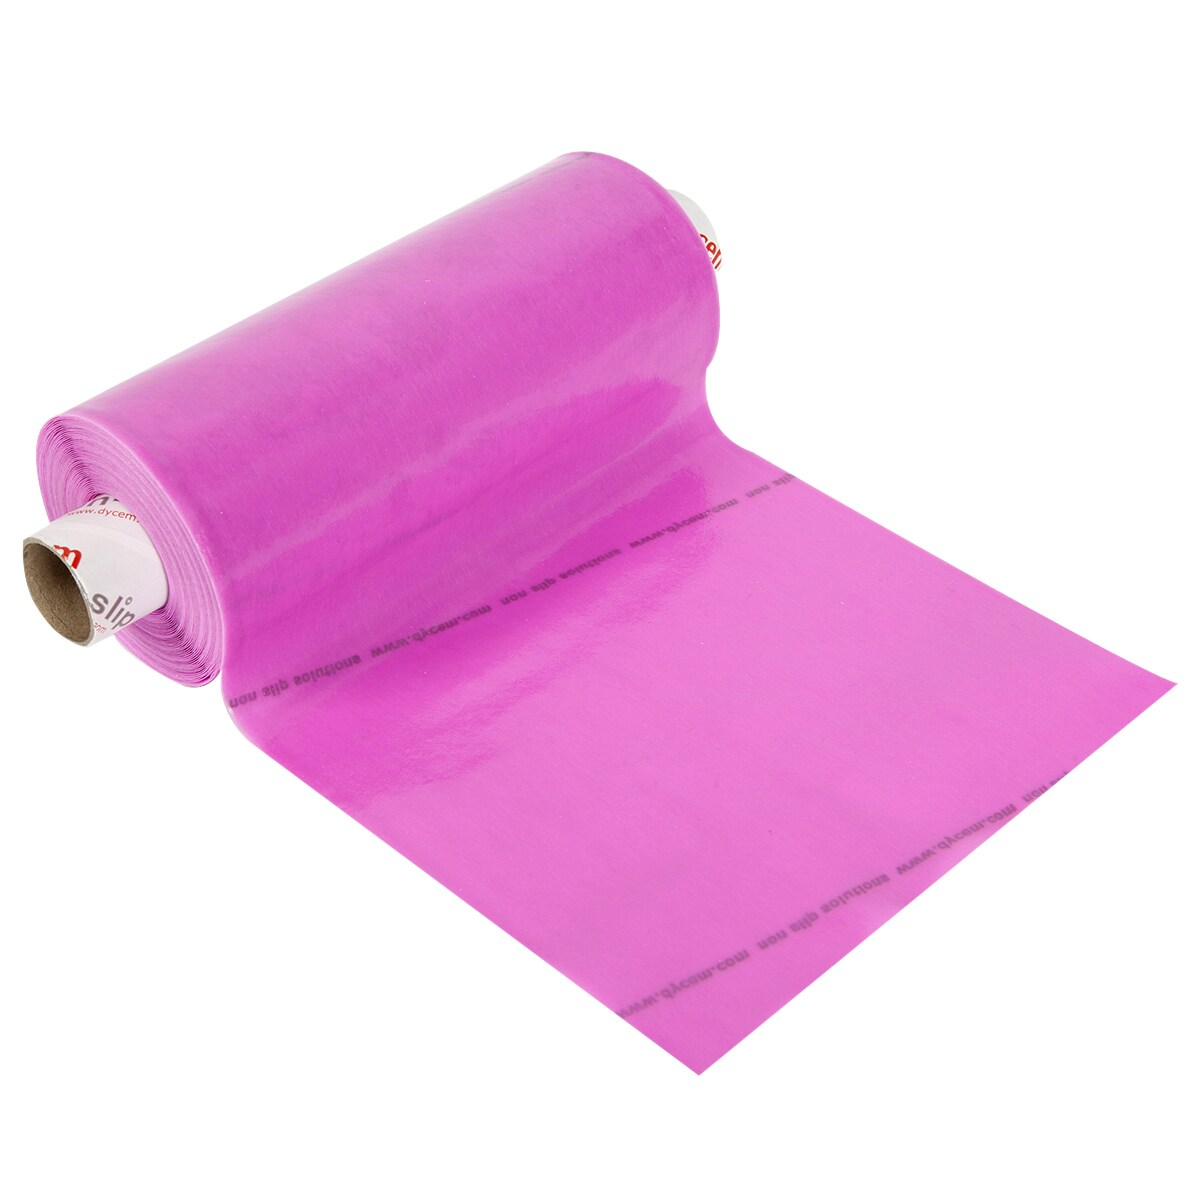 Shop Dycem Non-Slip Material Roll Pink - Free Shipping On Orders ...